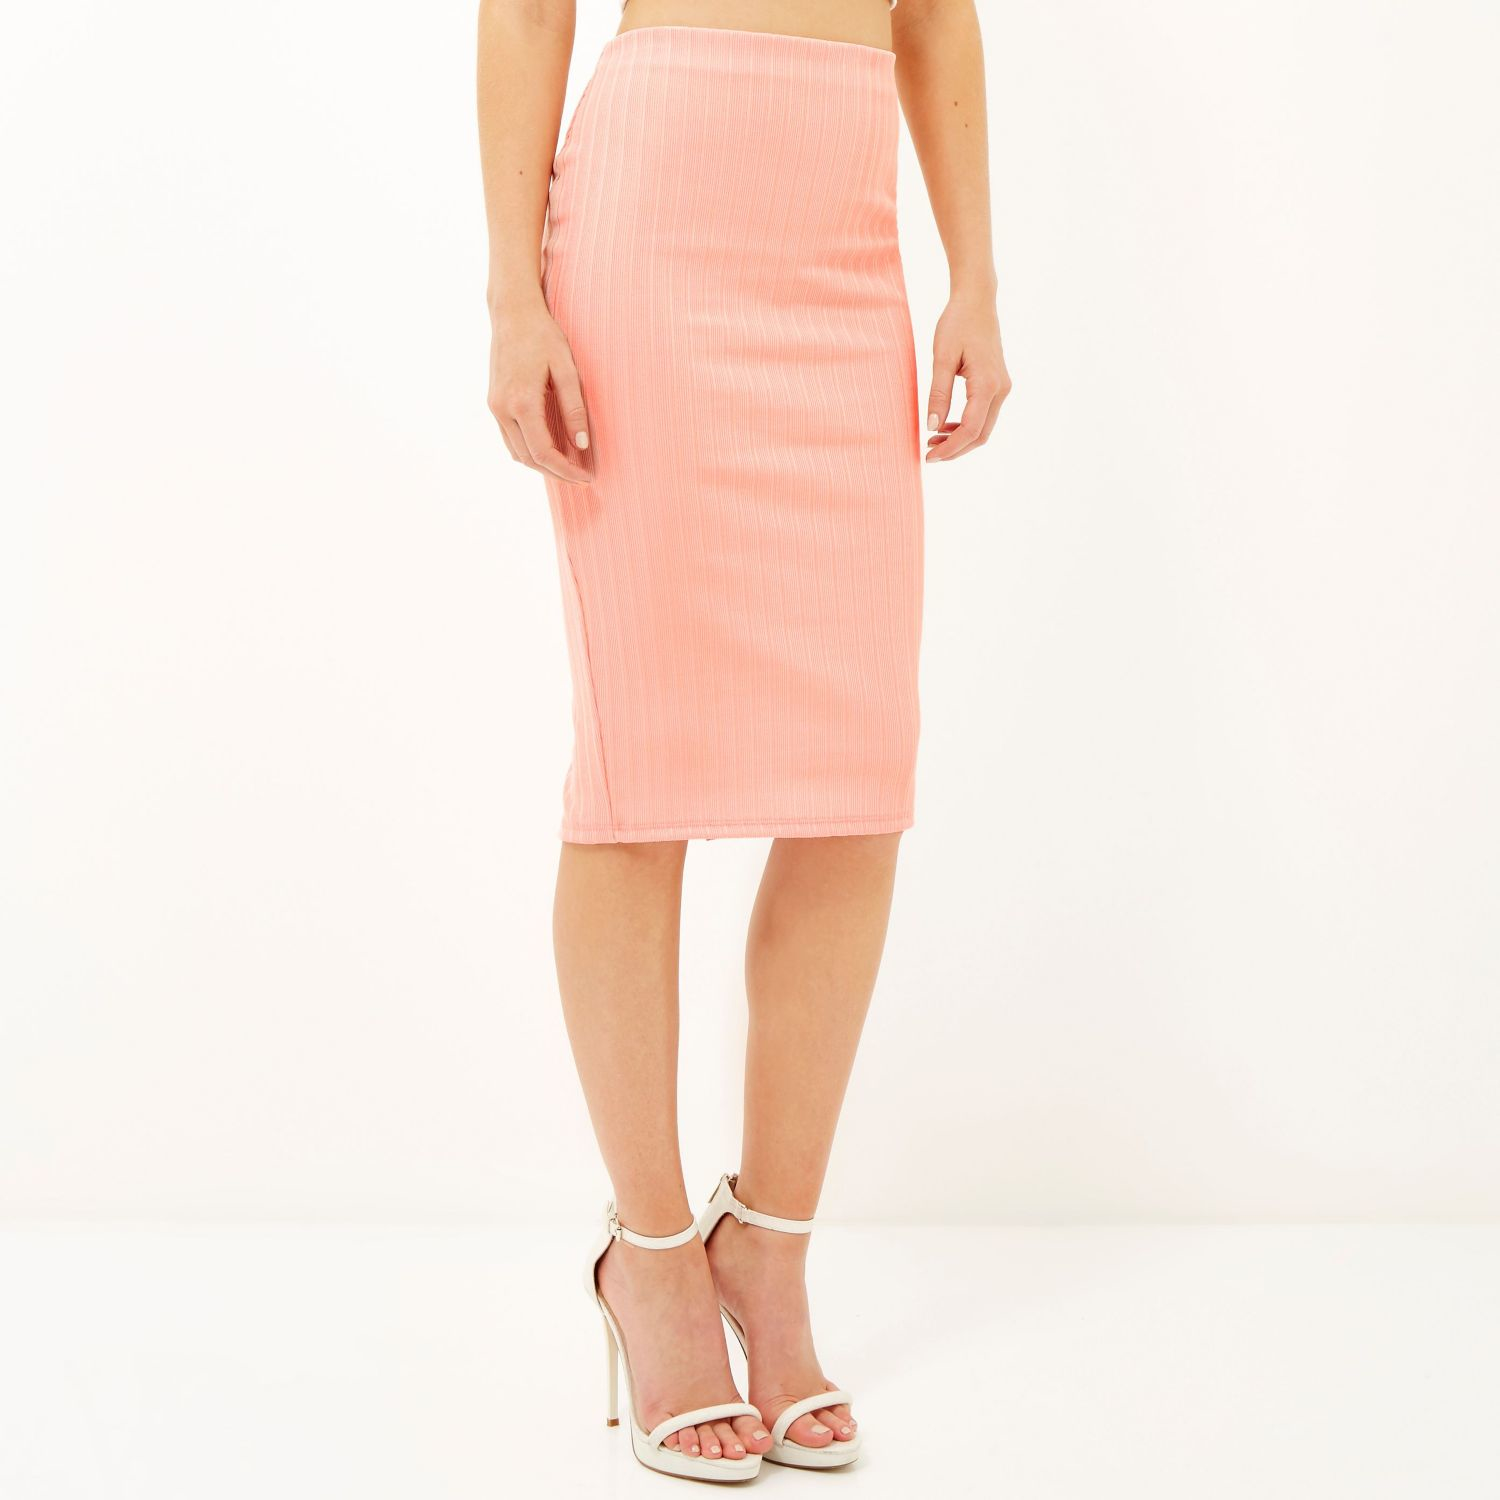 River island Light Pink Ribbed Pencil Skirt in Pink | Lyst